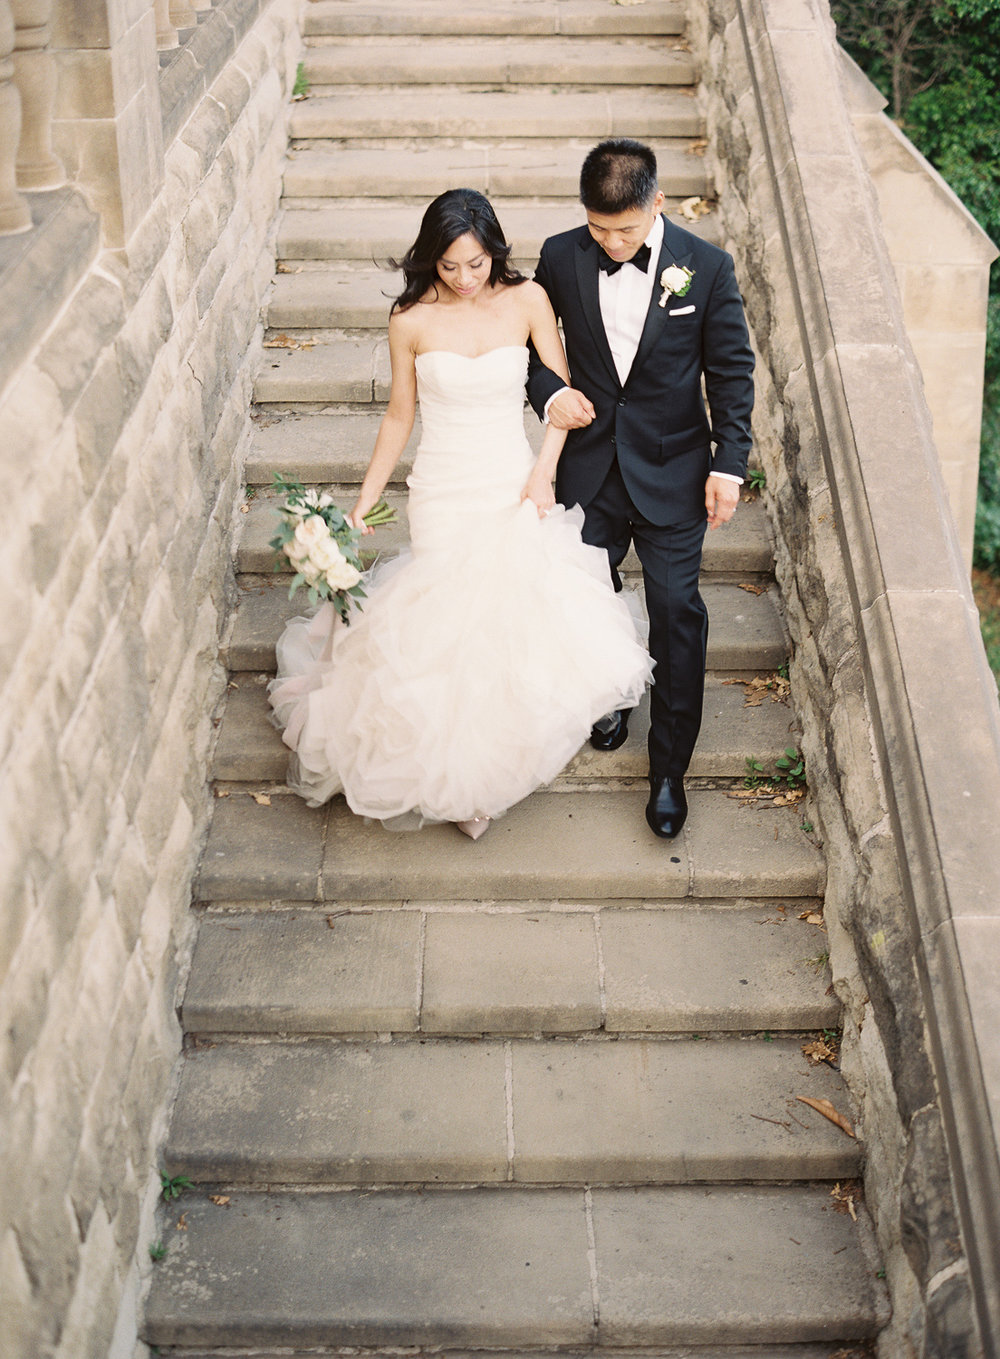 caroline-tran-greystone-mansion-wedding-5.jpg